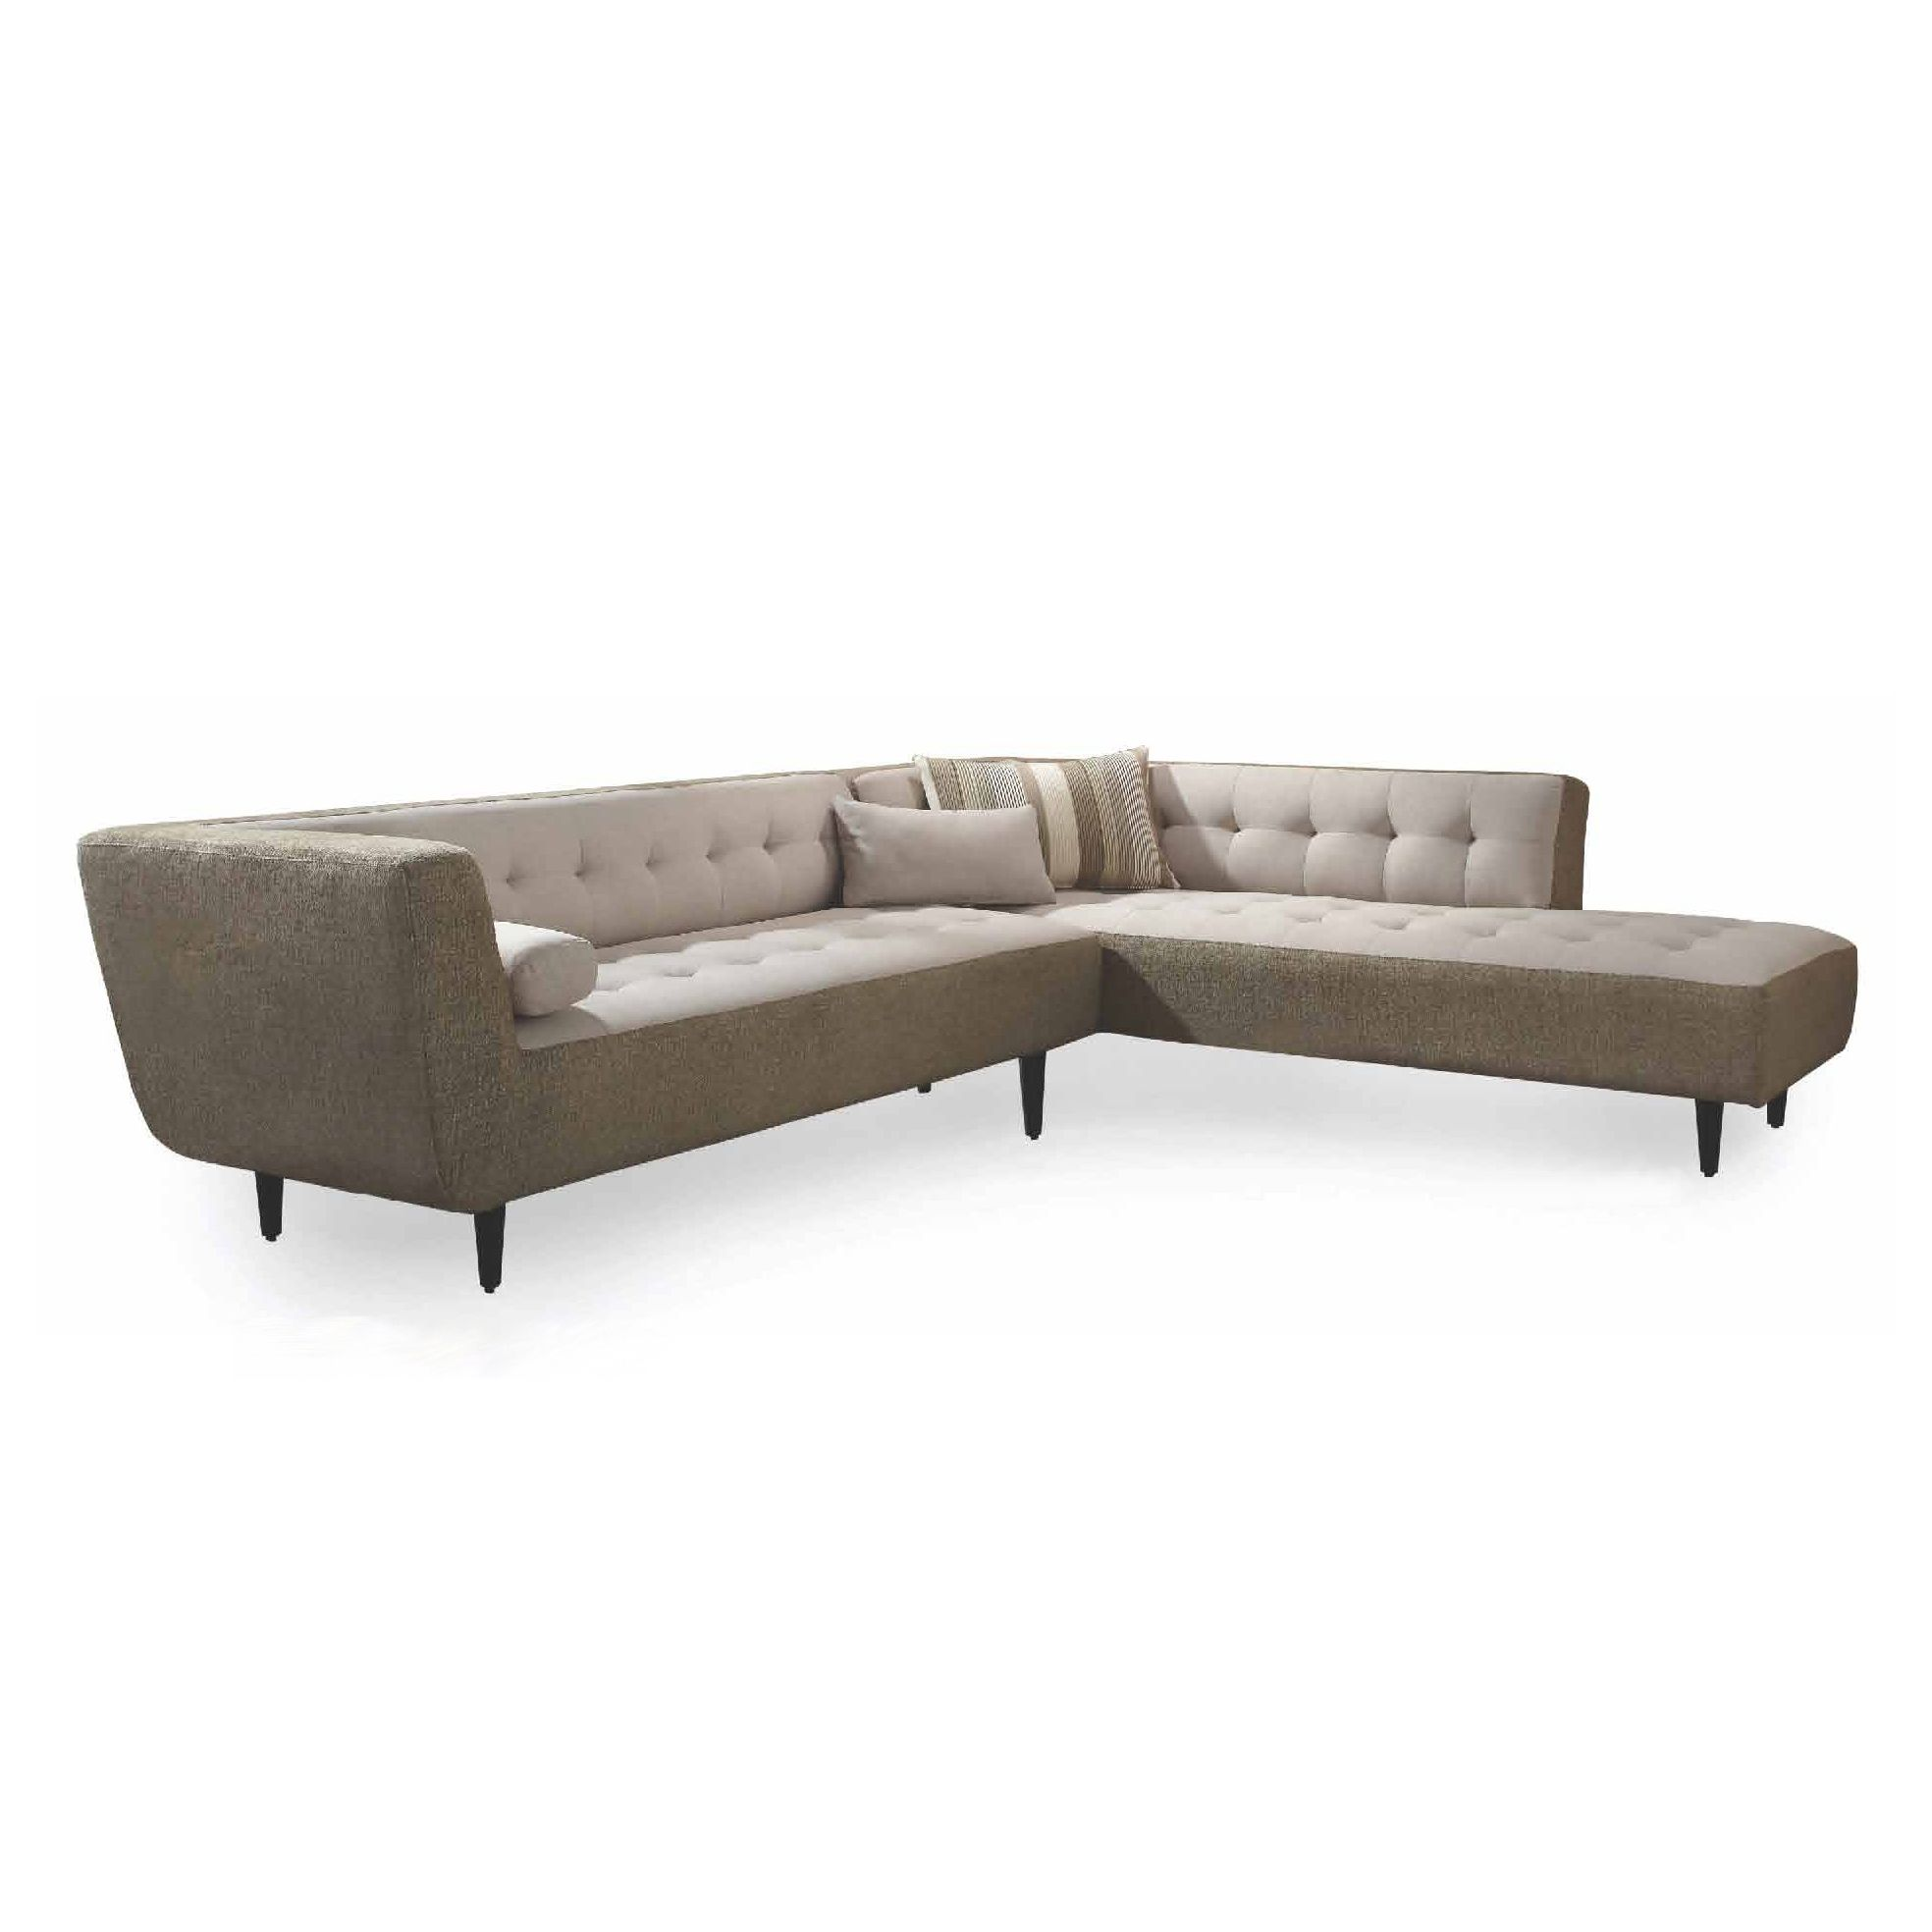 Comodo 2pc Sectional Sofa And Loveseat Set Cheap Sectional Couches Sofas For Small Spaces